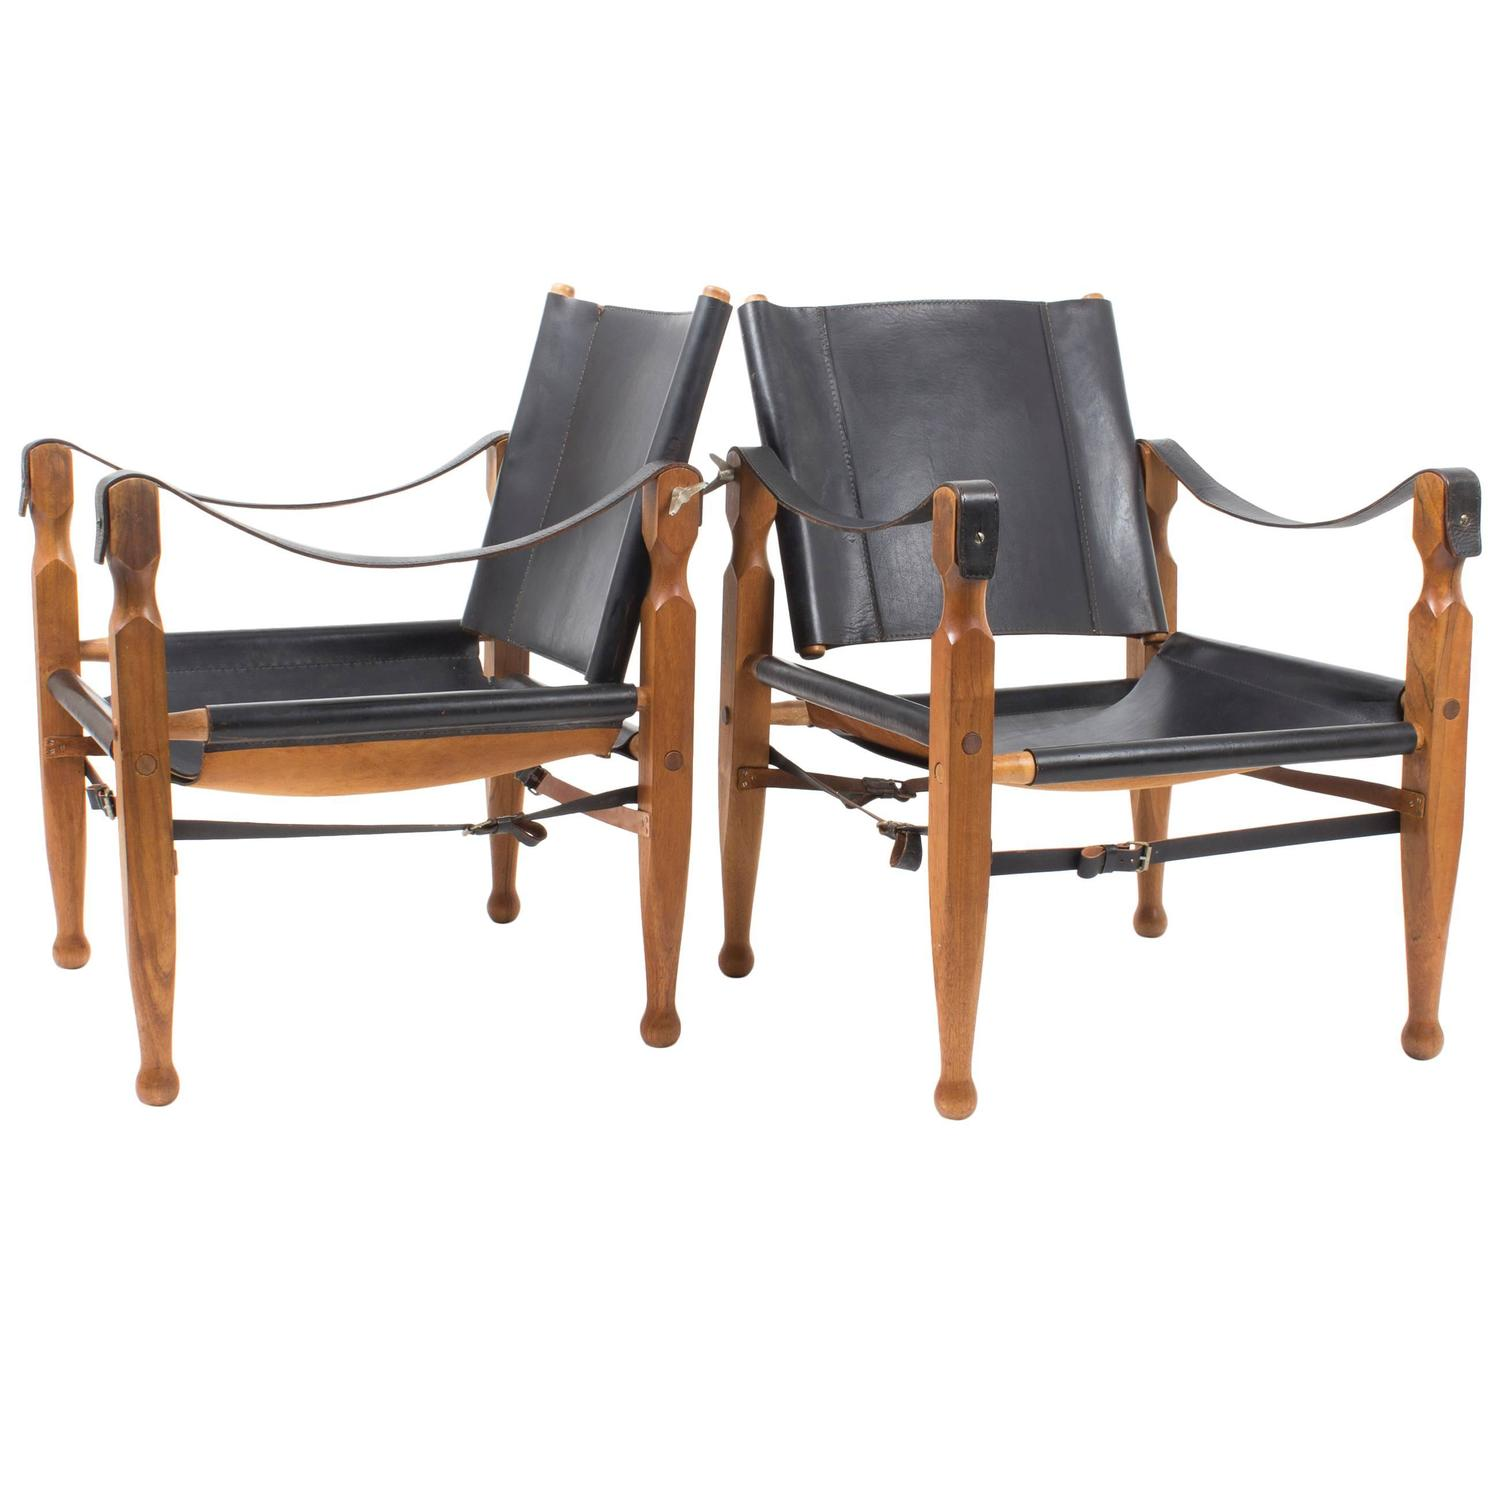 Rare Pair Of Mint Black Carl Auböck Safari Chairs, Designed In 1950s For  Sale At 1stdibs